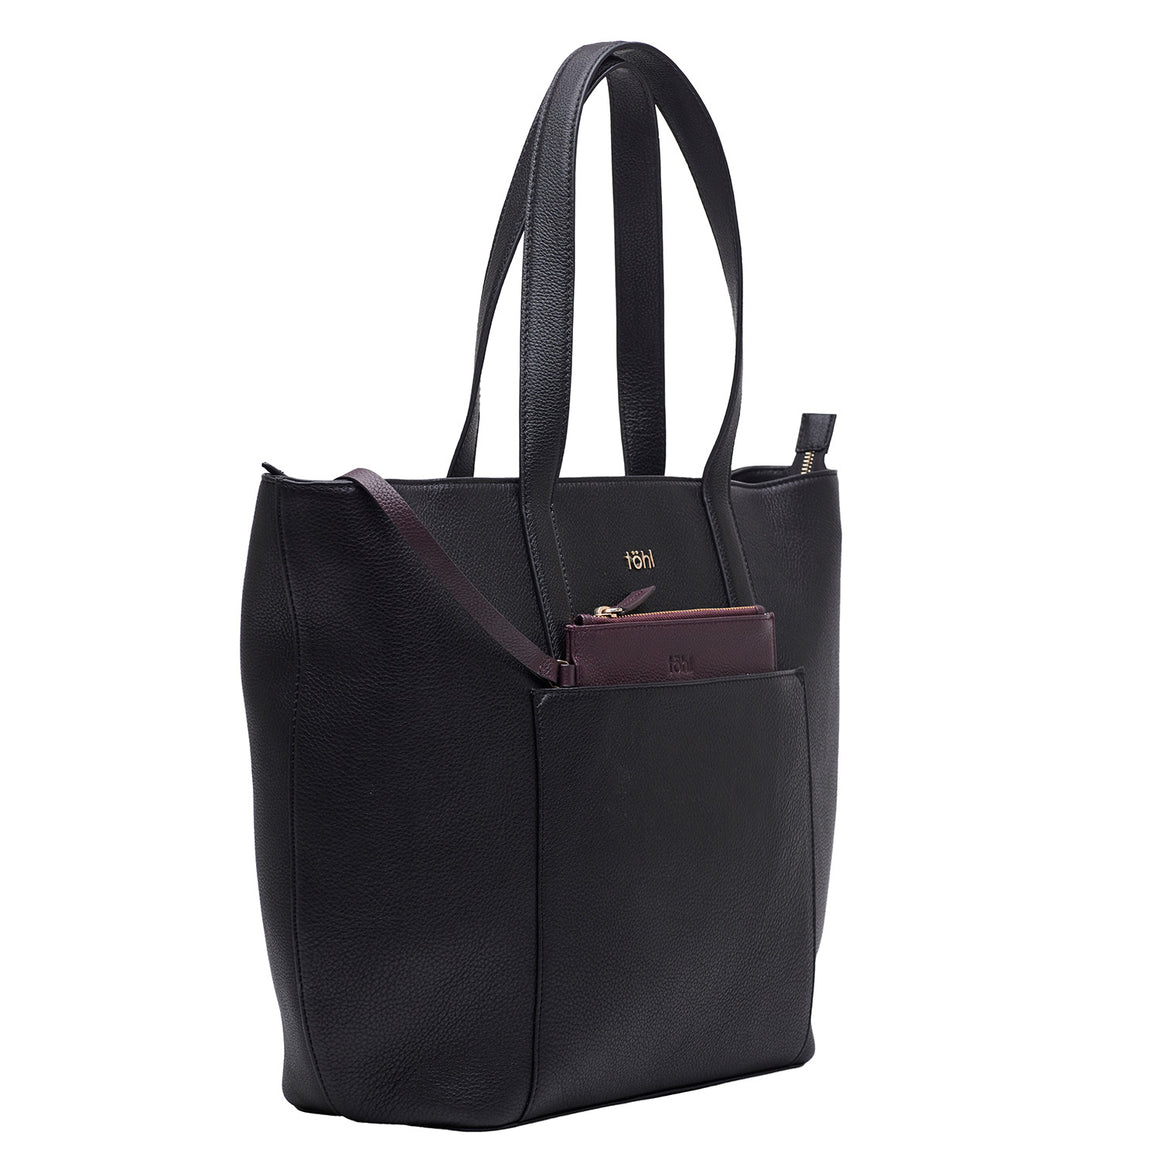 TT 0010 - TOHL LUSH WOMEN'S TOTE BAG - CHARCOAL BLACK